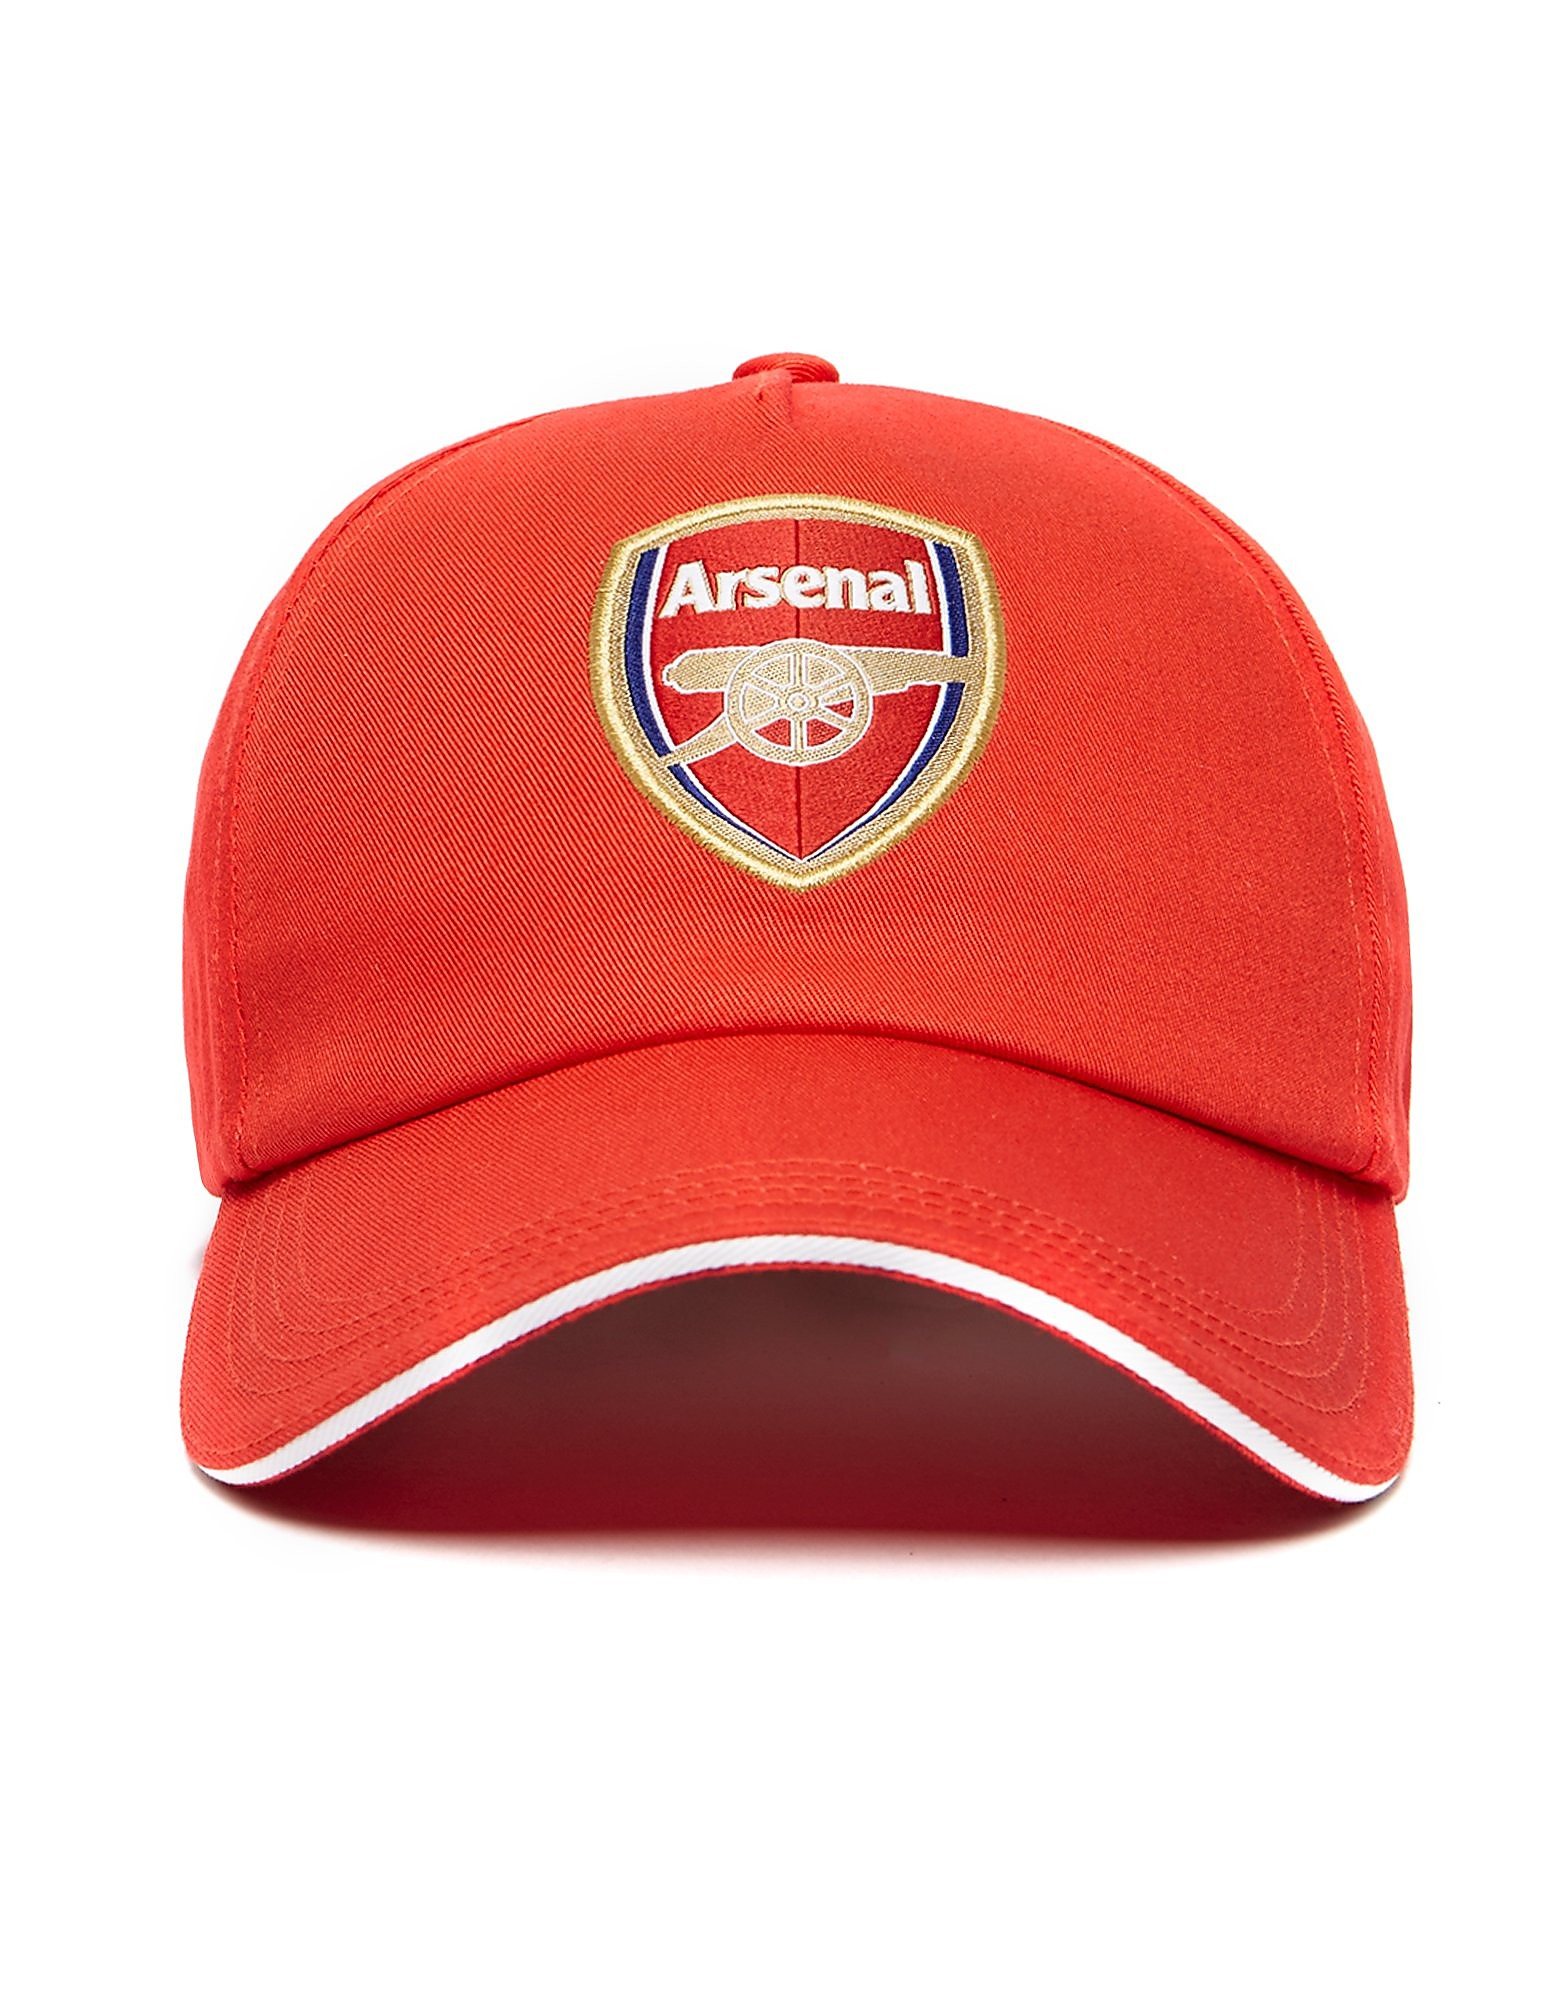 PUMA Arsenal Kappe